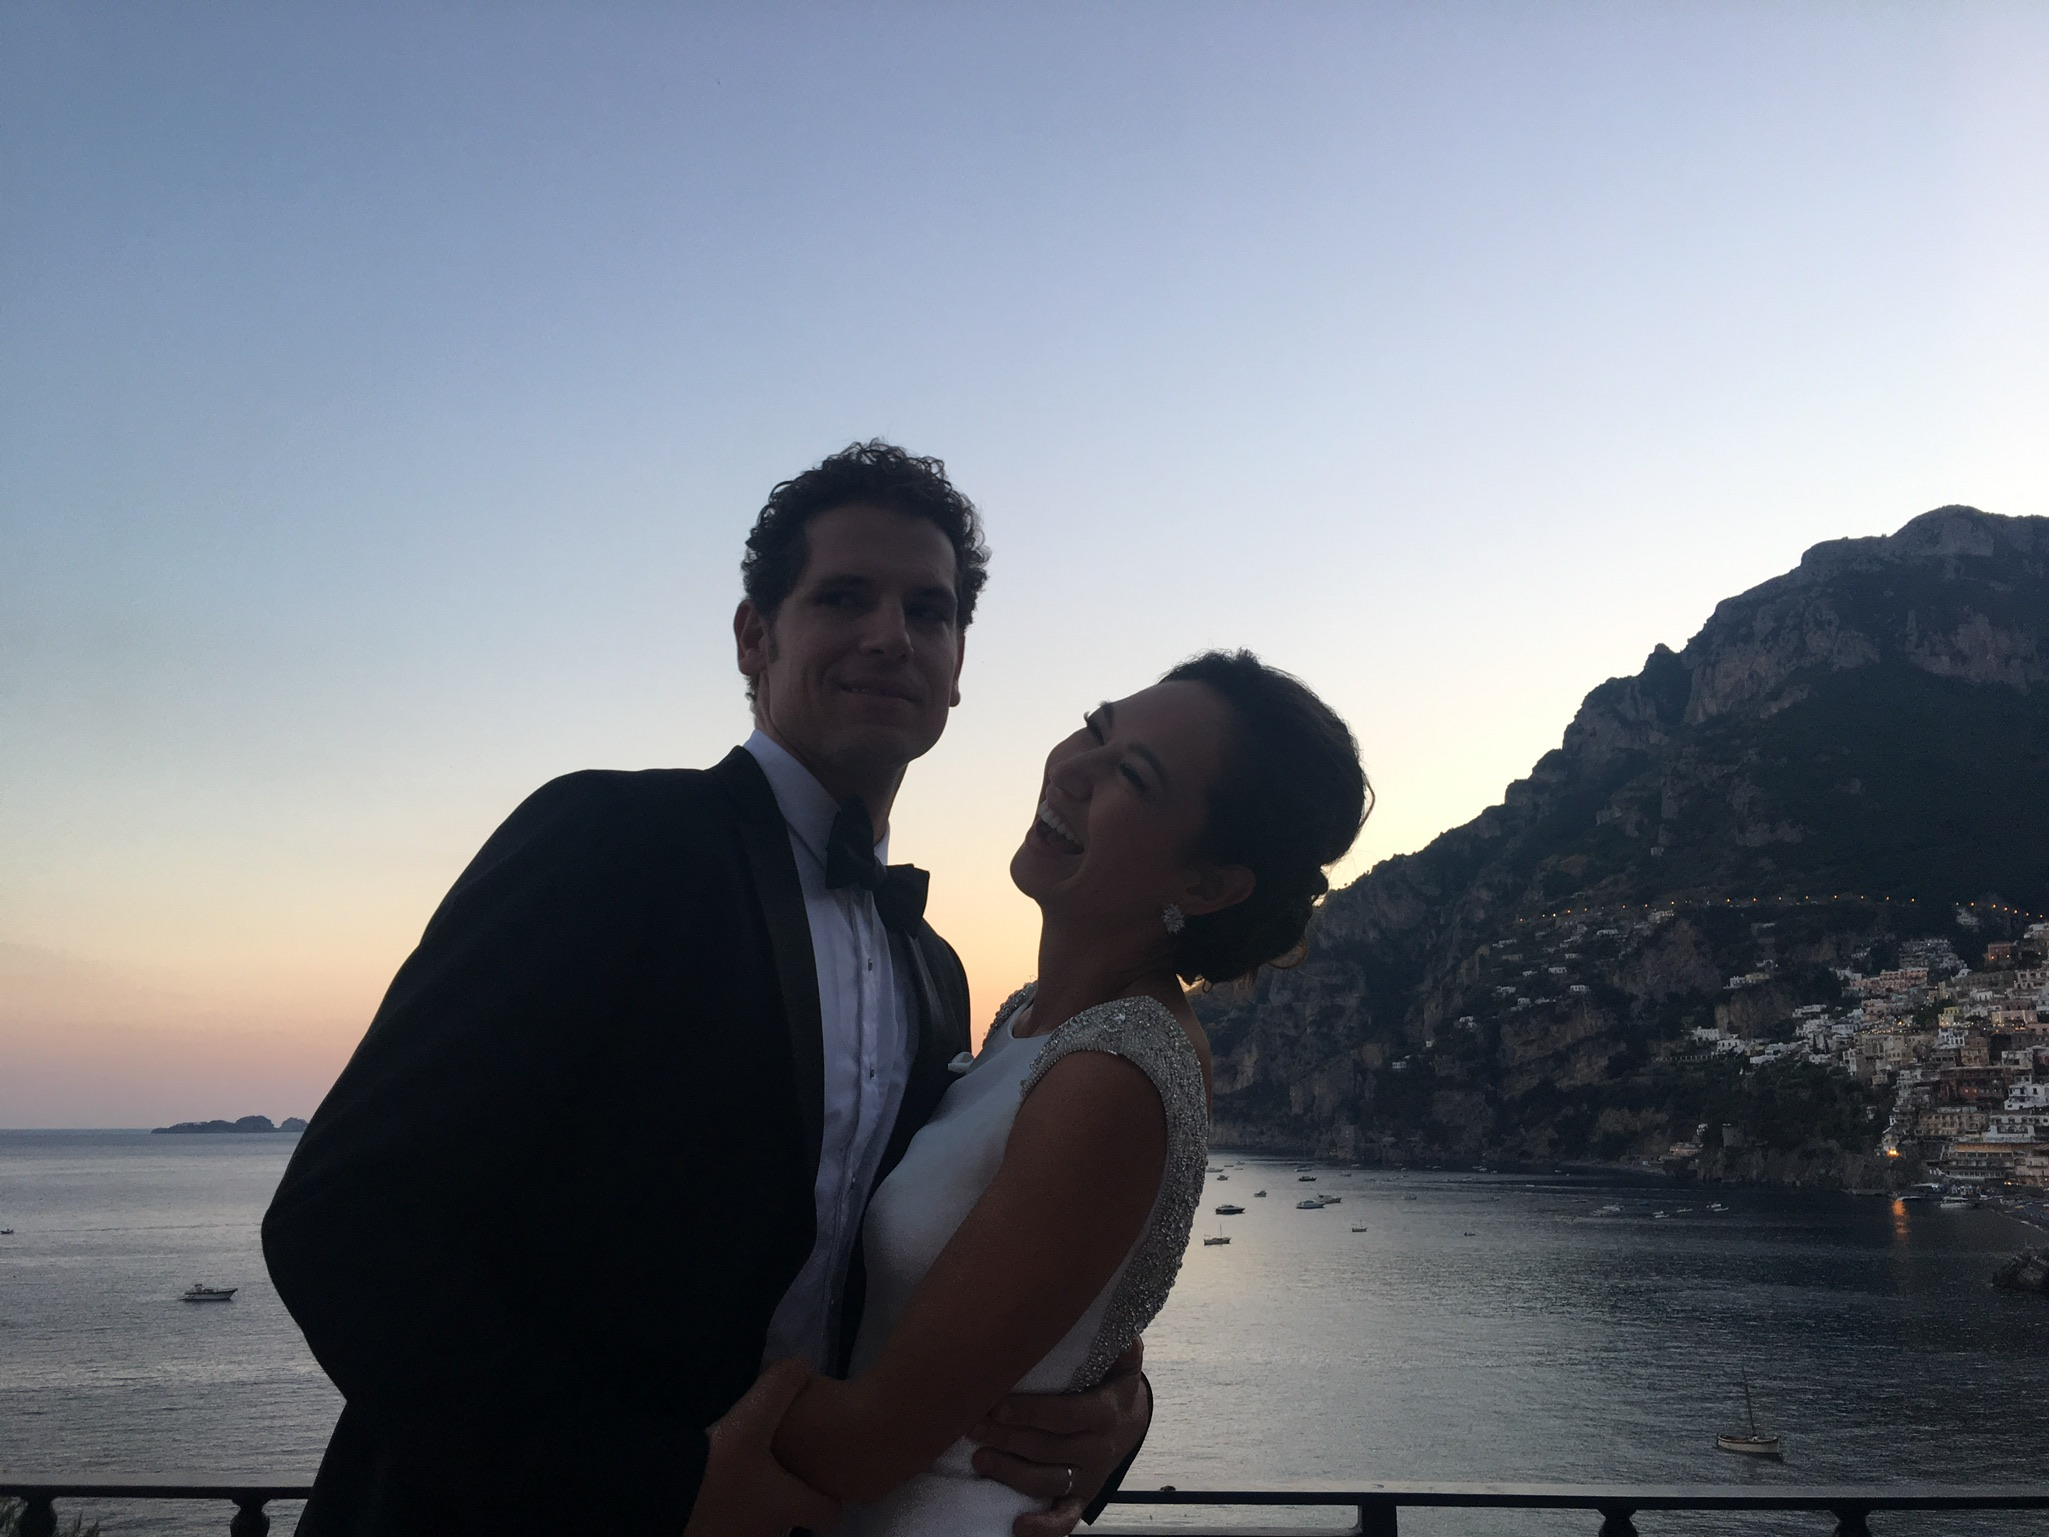 http://www.weddingamalfi.com/wp-content/uploads/Nathalie-and-Benjamin-wedding-in-Positano-30.jpg